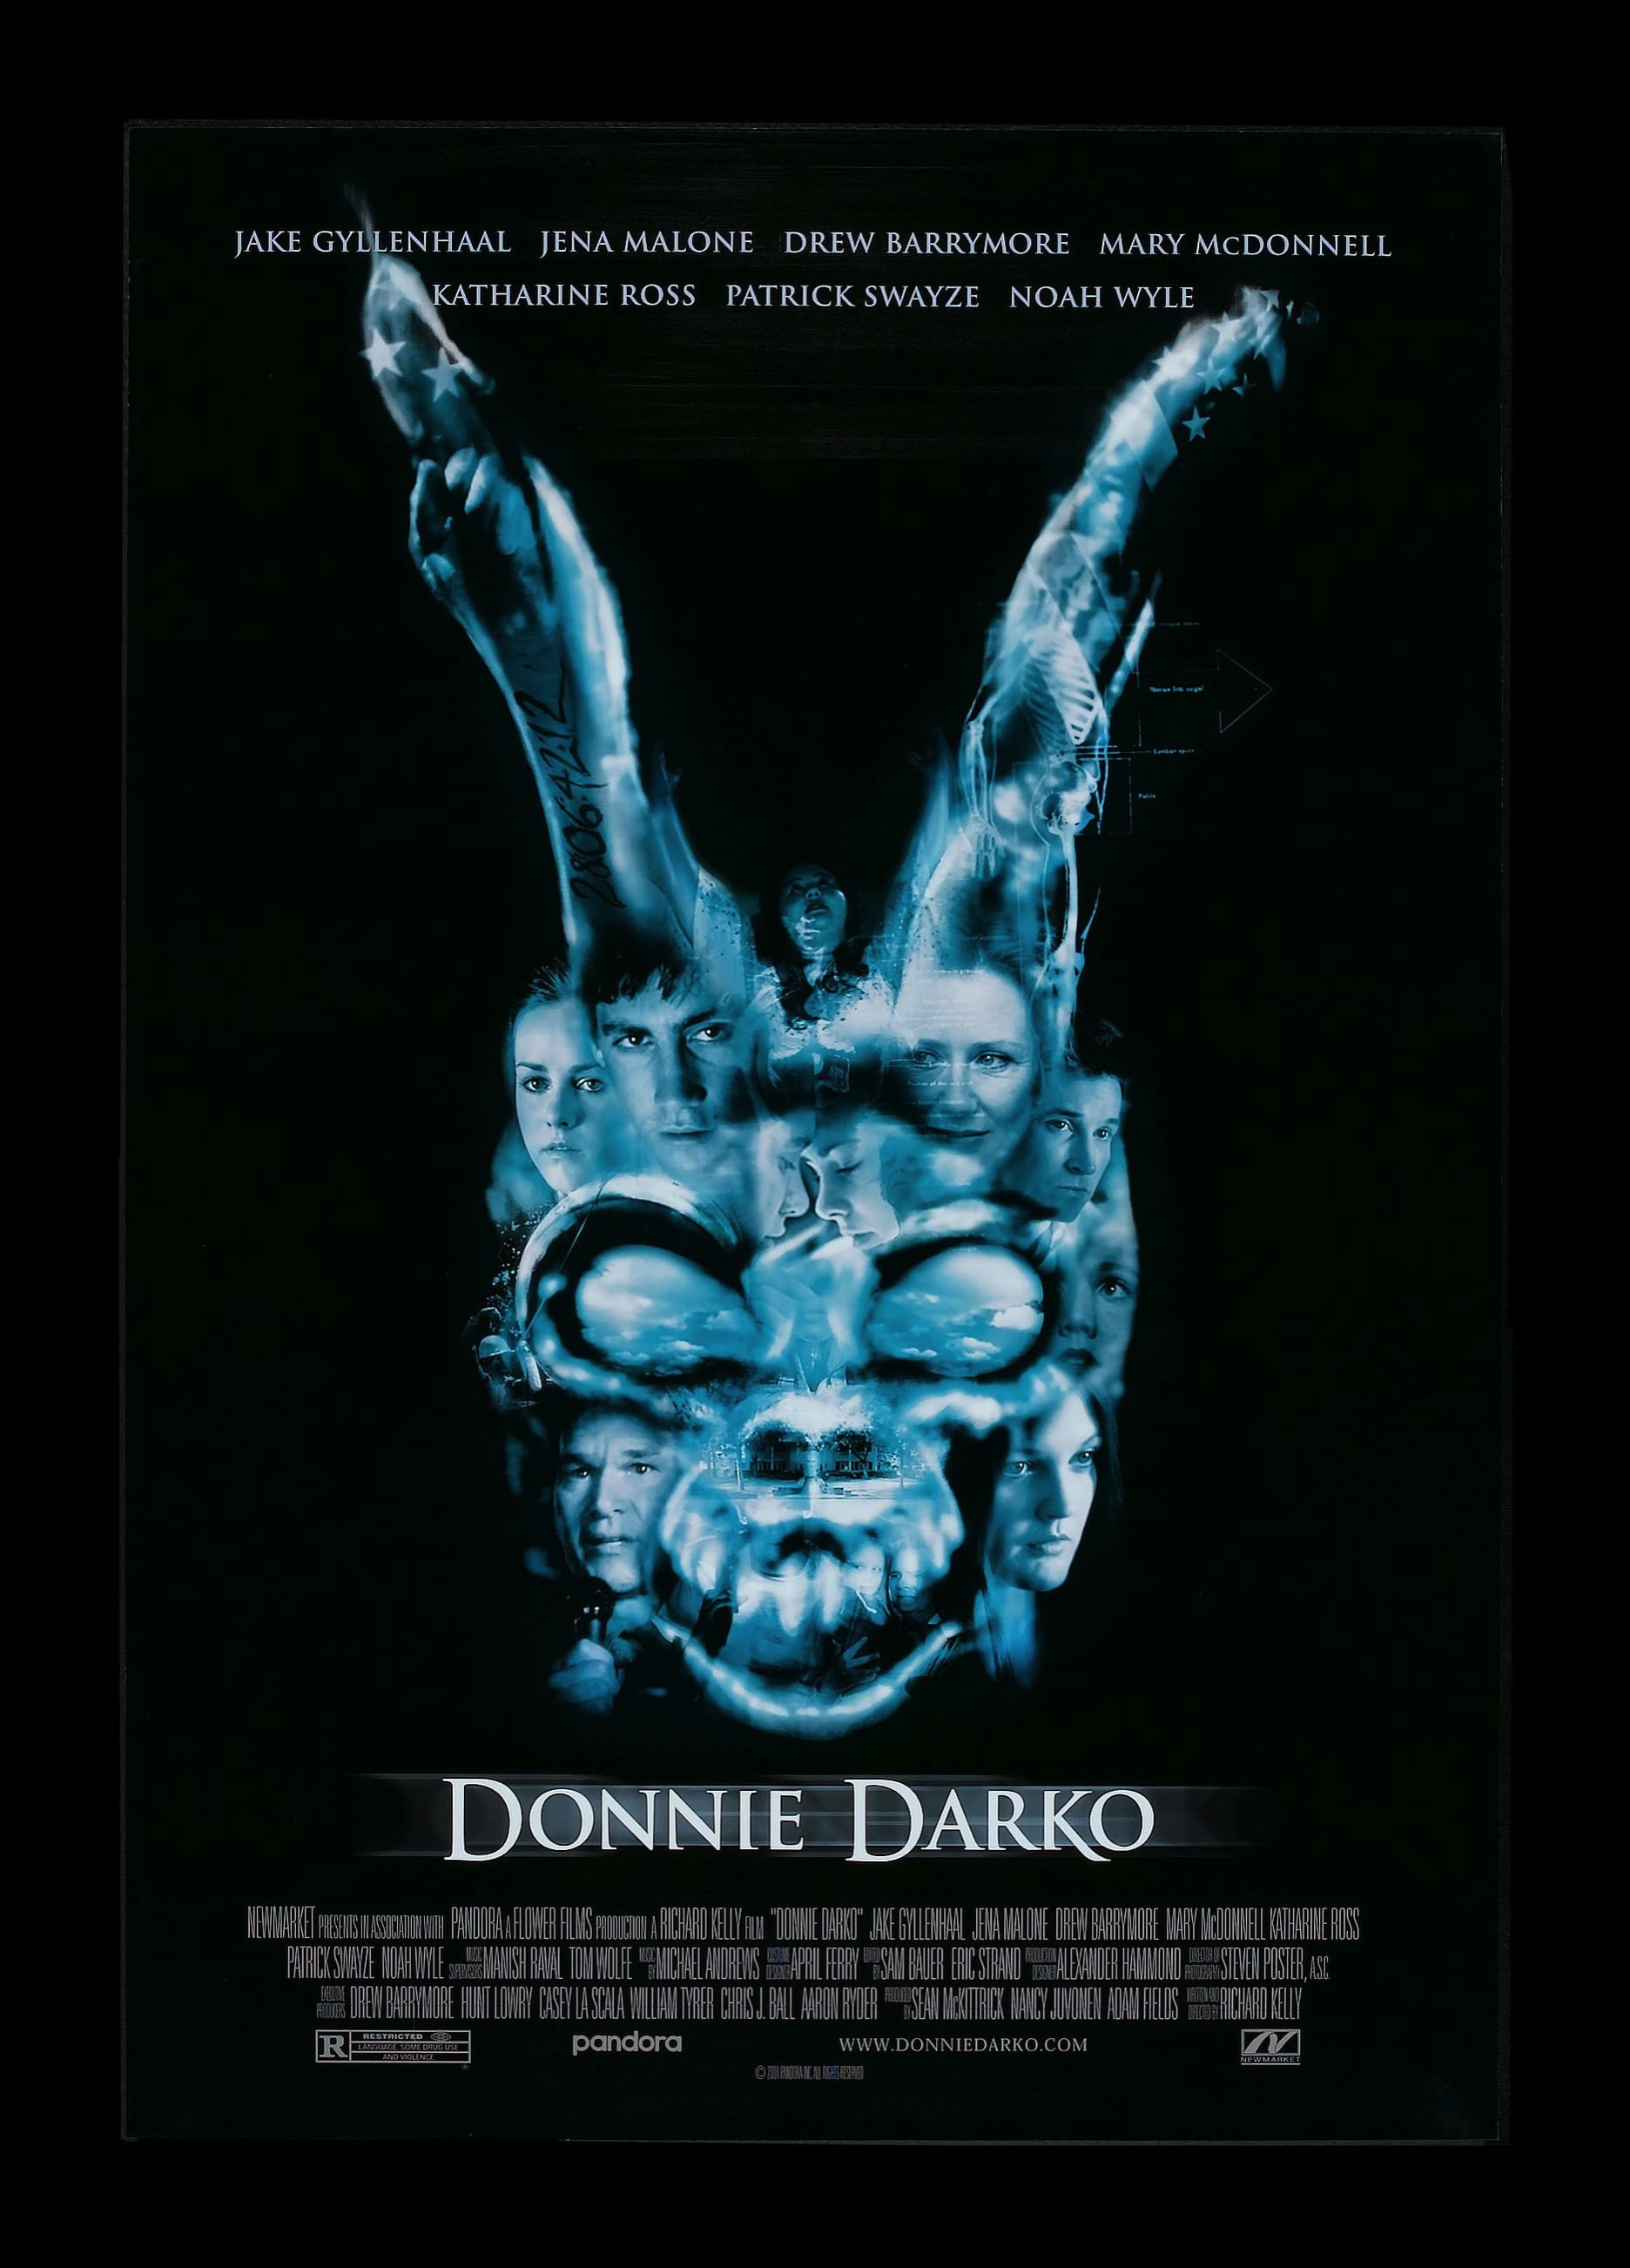 Donnie darko kelly